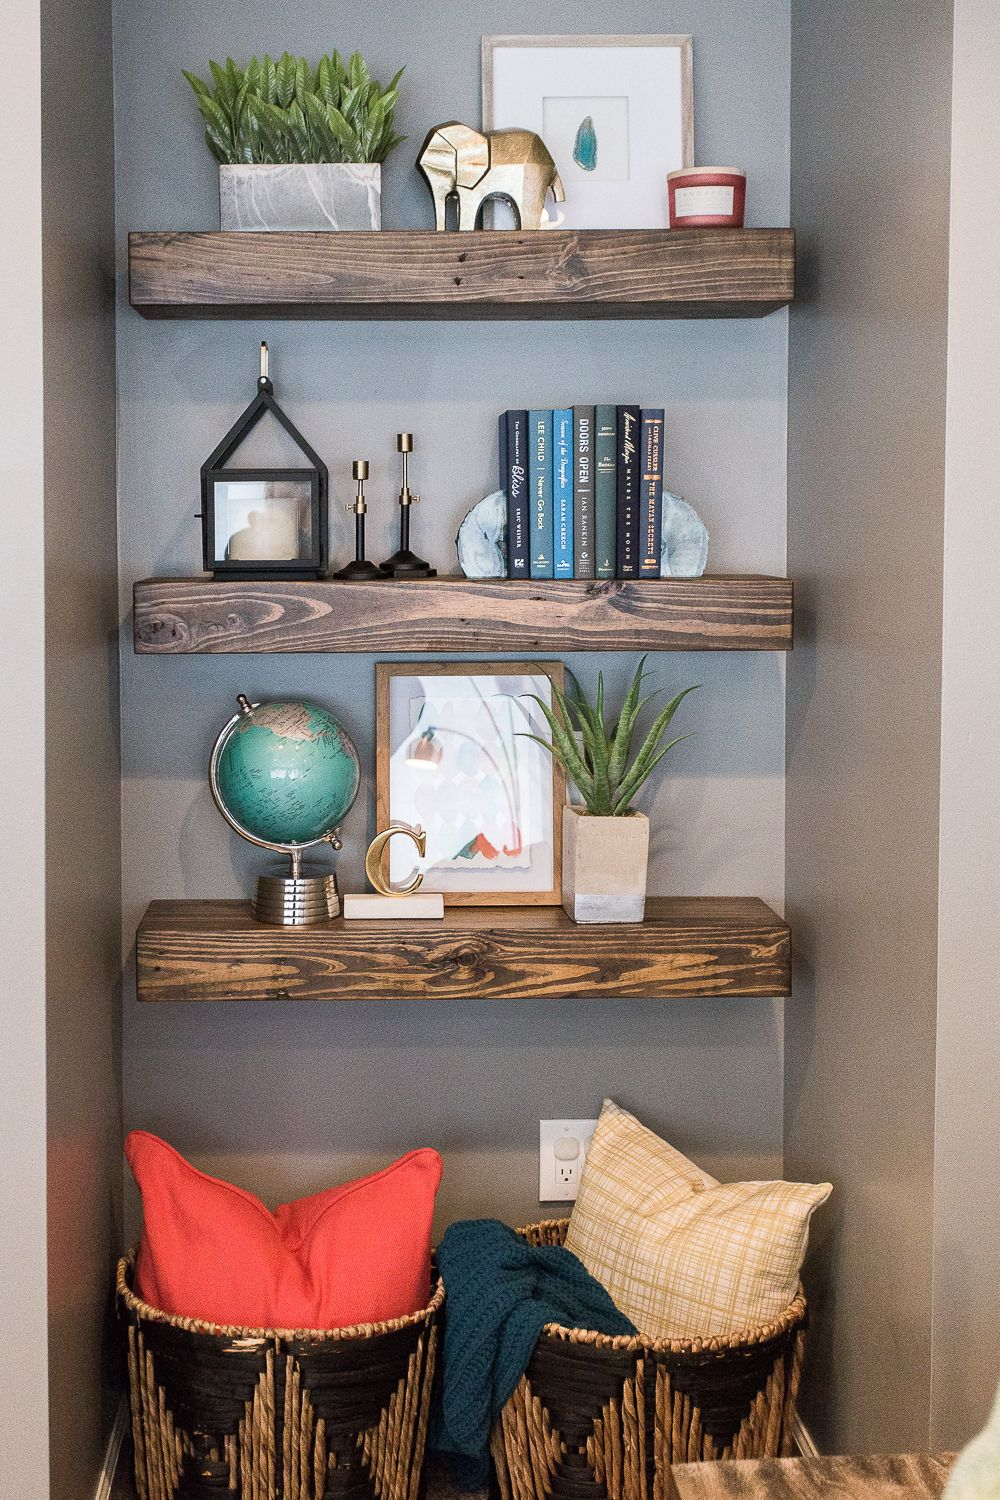 custom floating shelves nook beside the fireplace baskets beneath create additional storage opportunities omaha interior designers wall kmart sylvia park modern living room